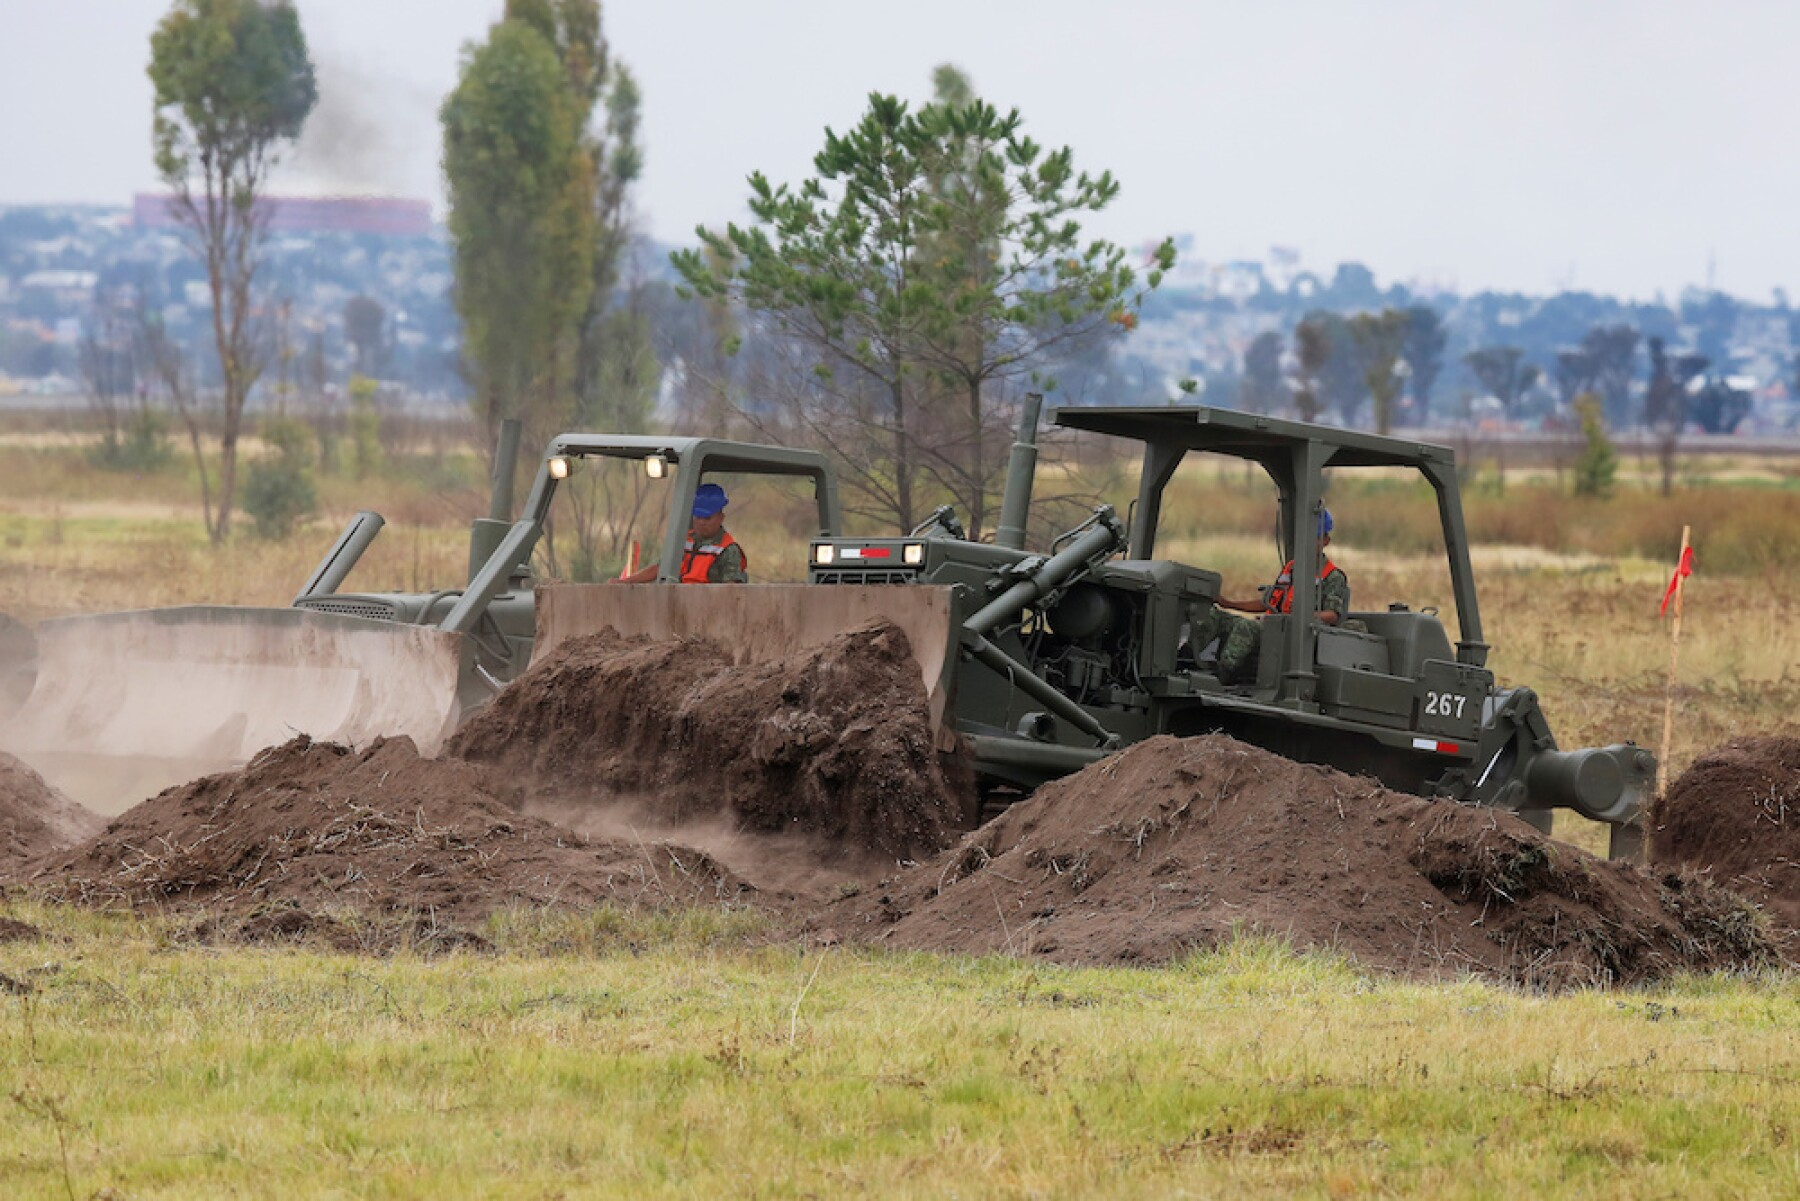 Heavy machinery is pictured working after an official event to mark the beginning of the construction of a new international airport, at the Santa Lucia military airbase in Zumpango